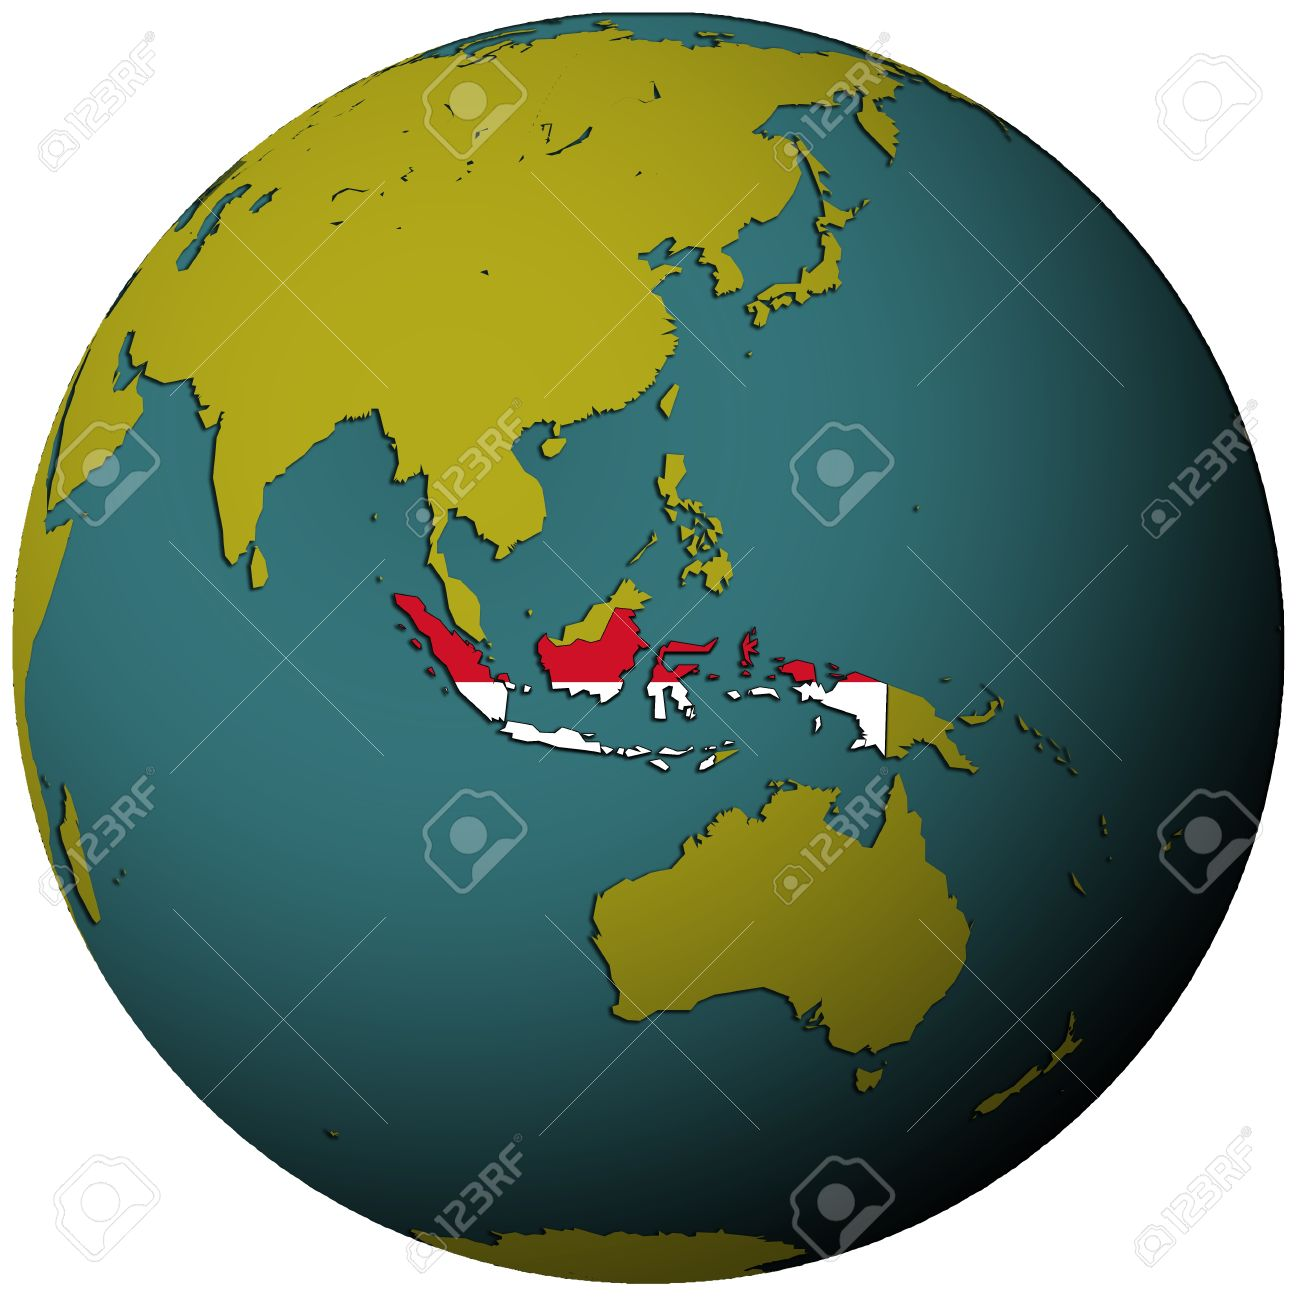 Indonesia Territory With Flag On Map Of Globe Stock Photo, Picture